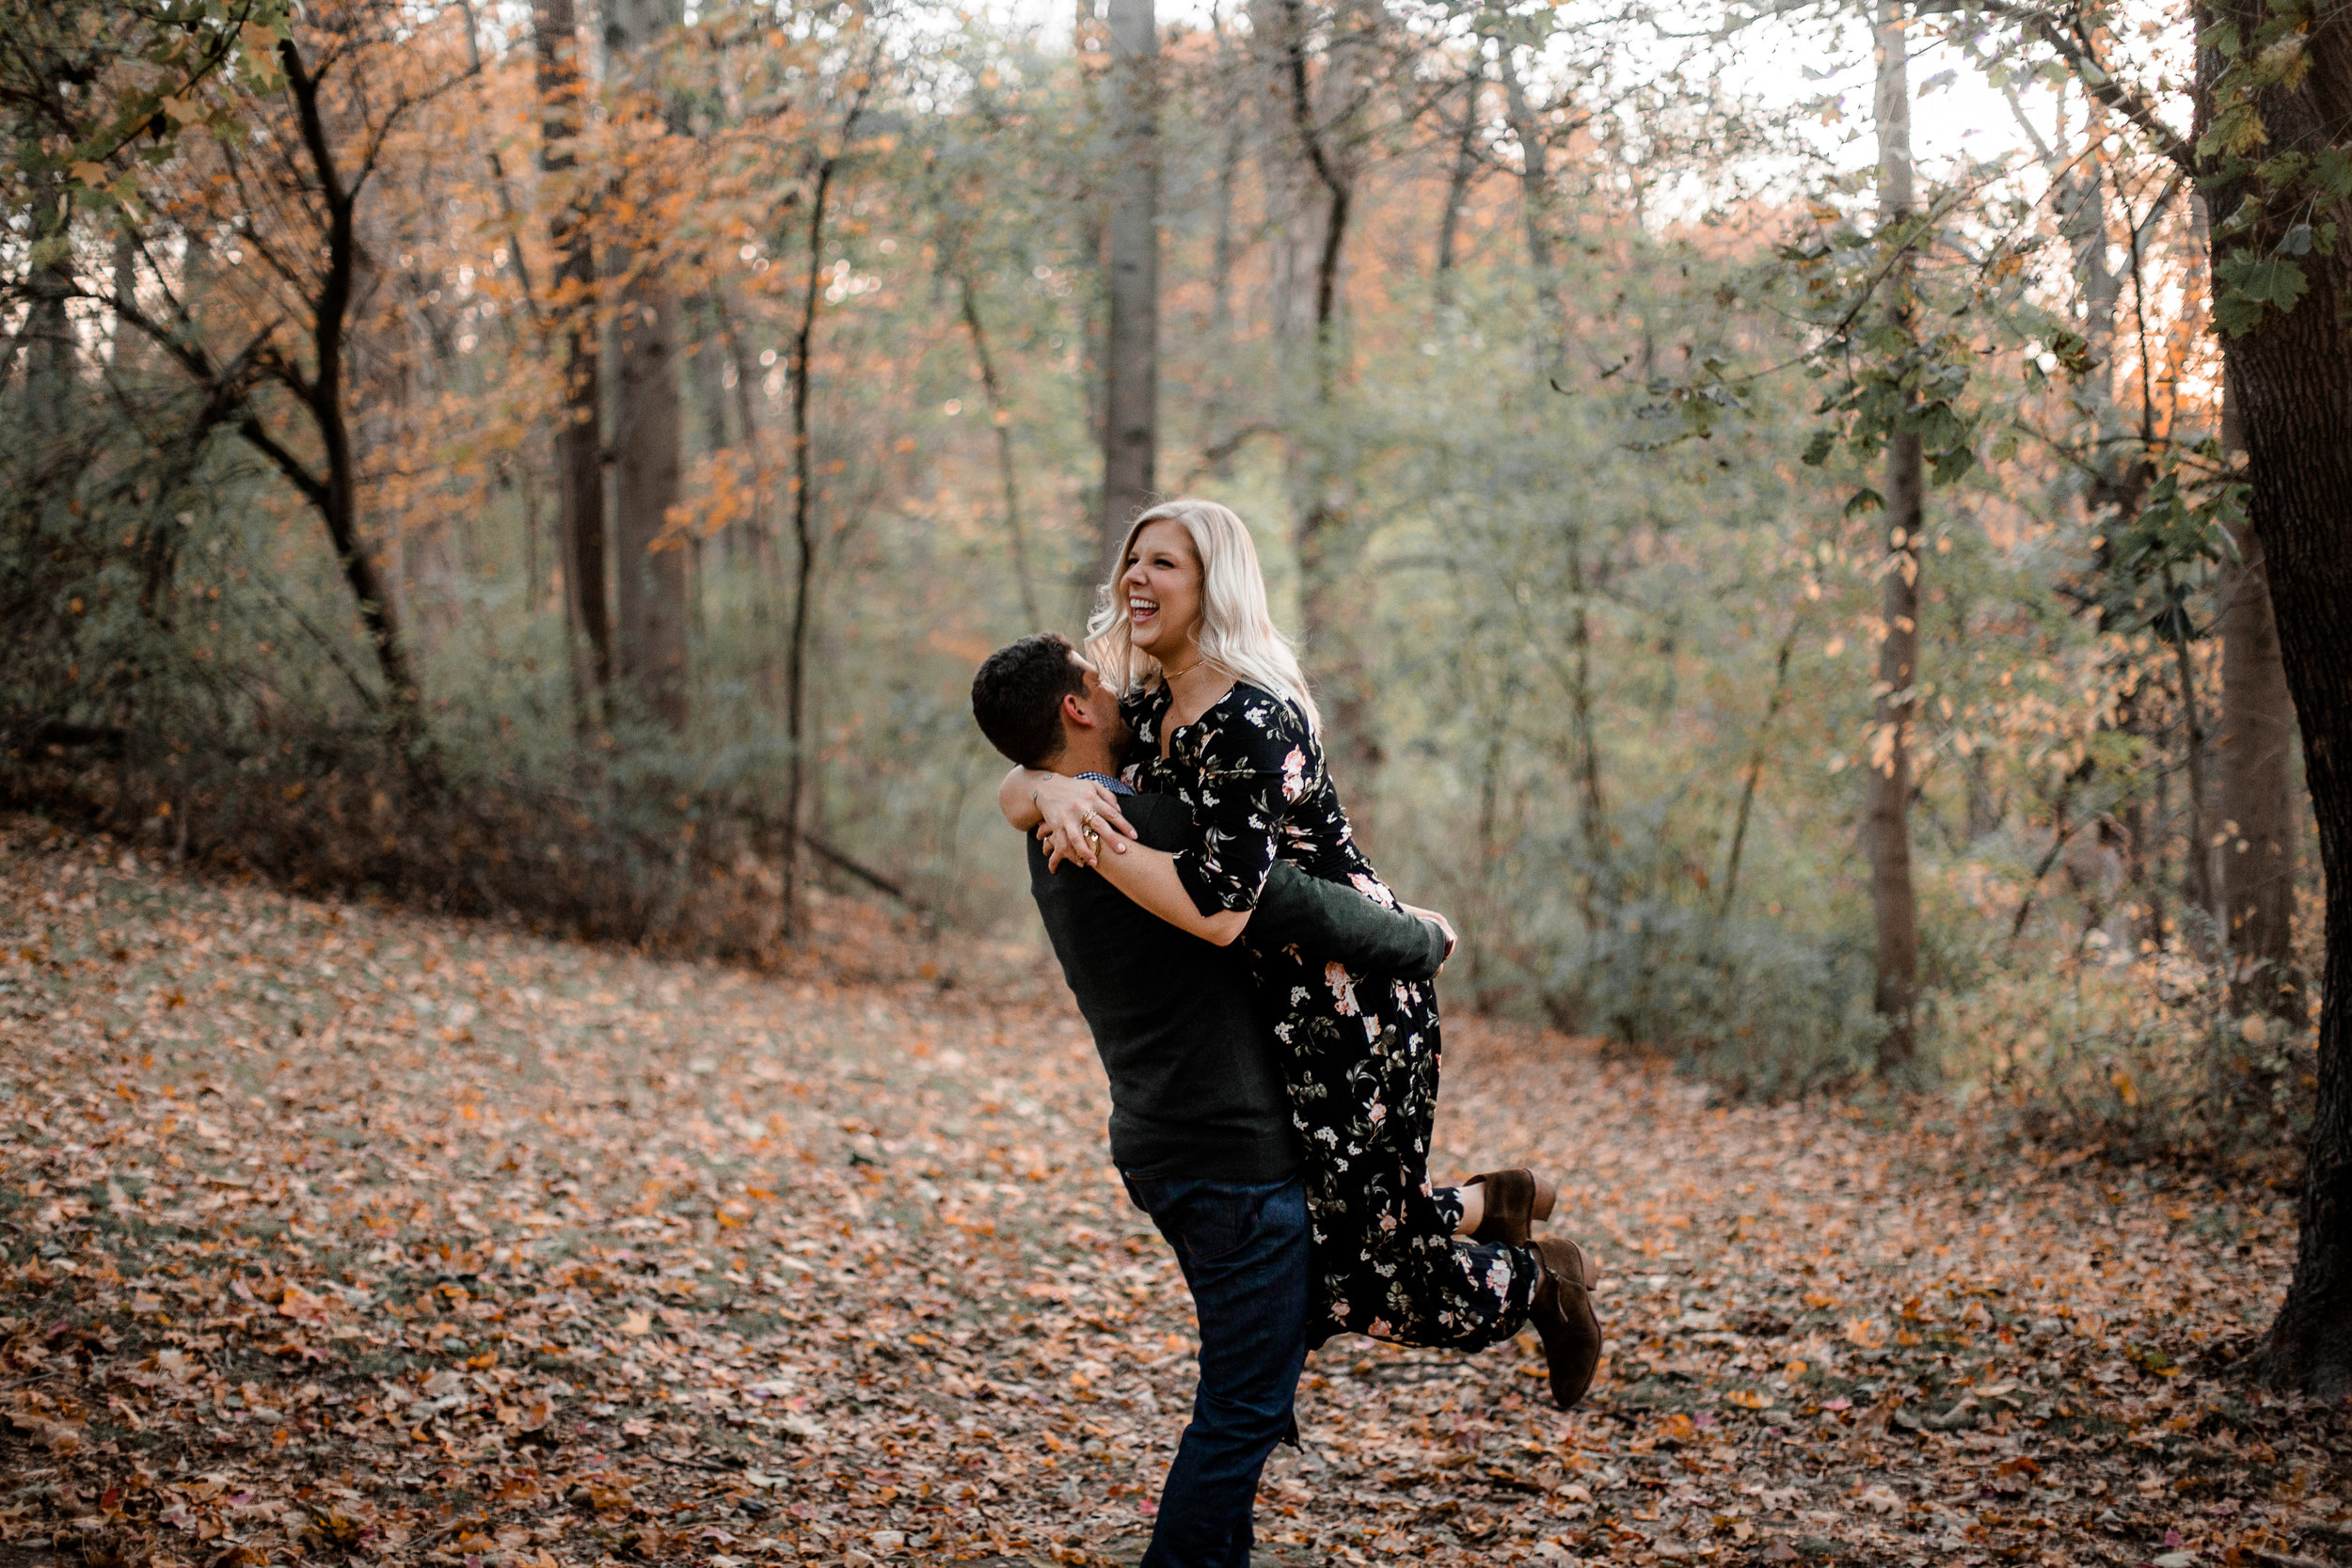 nicole-daacke-photography-carefree-bohemian-lancaster-pa-pennsylvania-engagement-photos-engagement-session-golden-sunset-adventure-session-in-lancaster-pa-lancaster-pa-outdoor-wedding-photographer-46.jpg